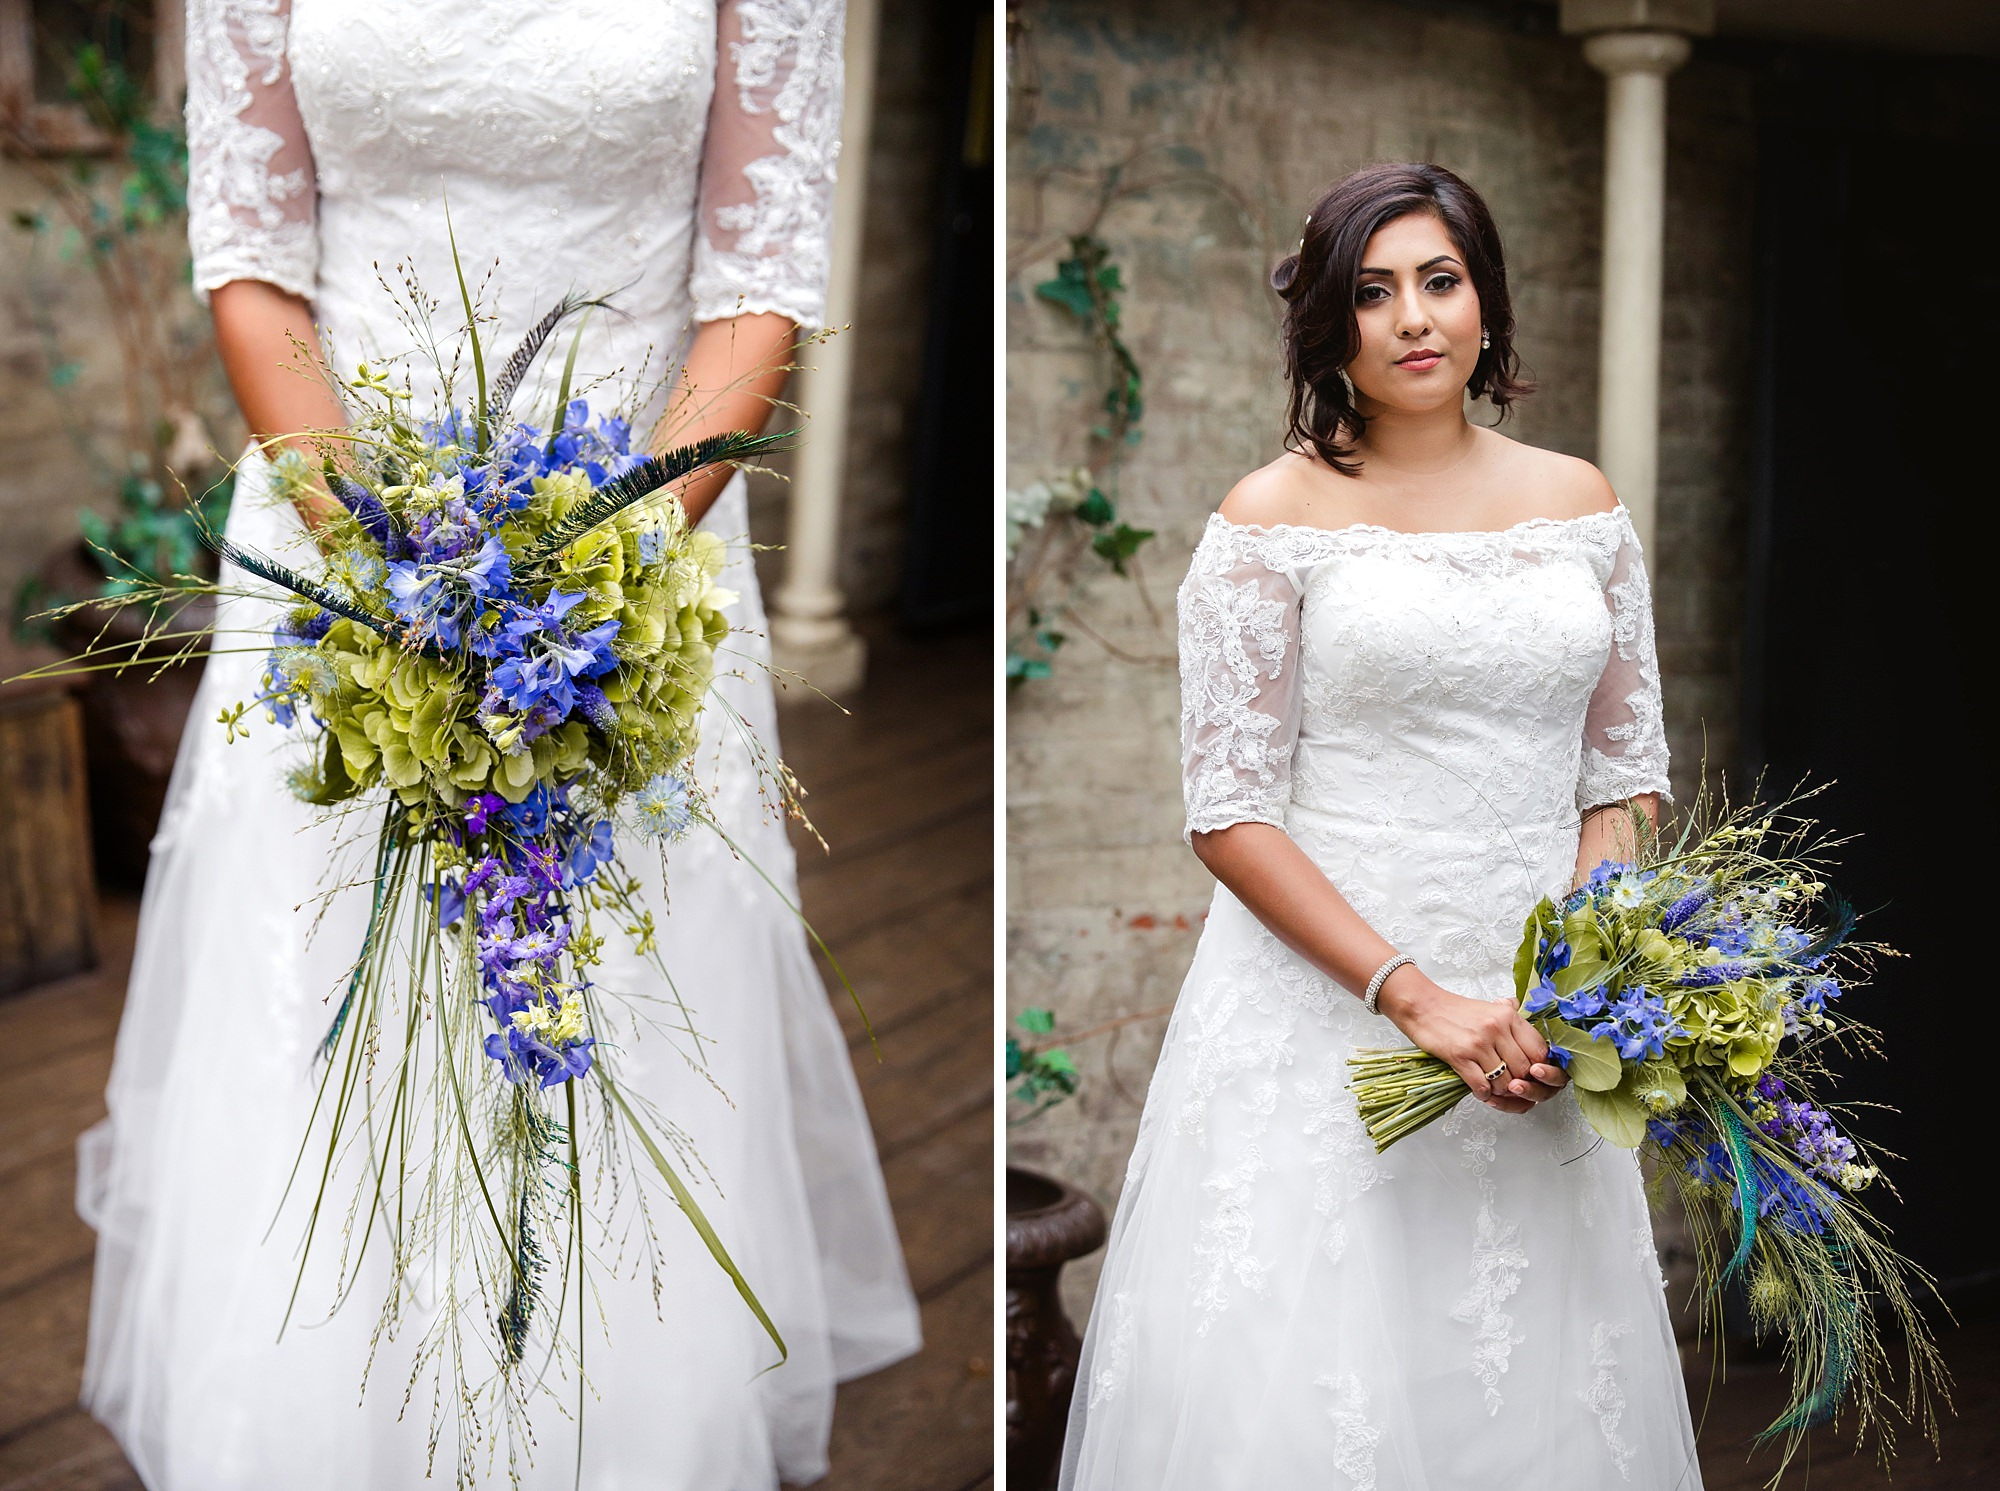 Paradise by way of Kensal Green wedding bride and bouquet